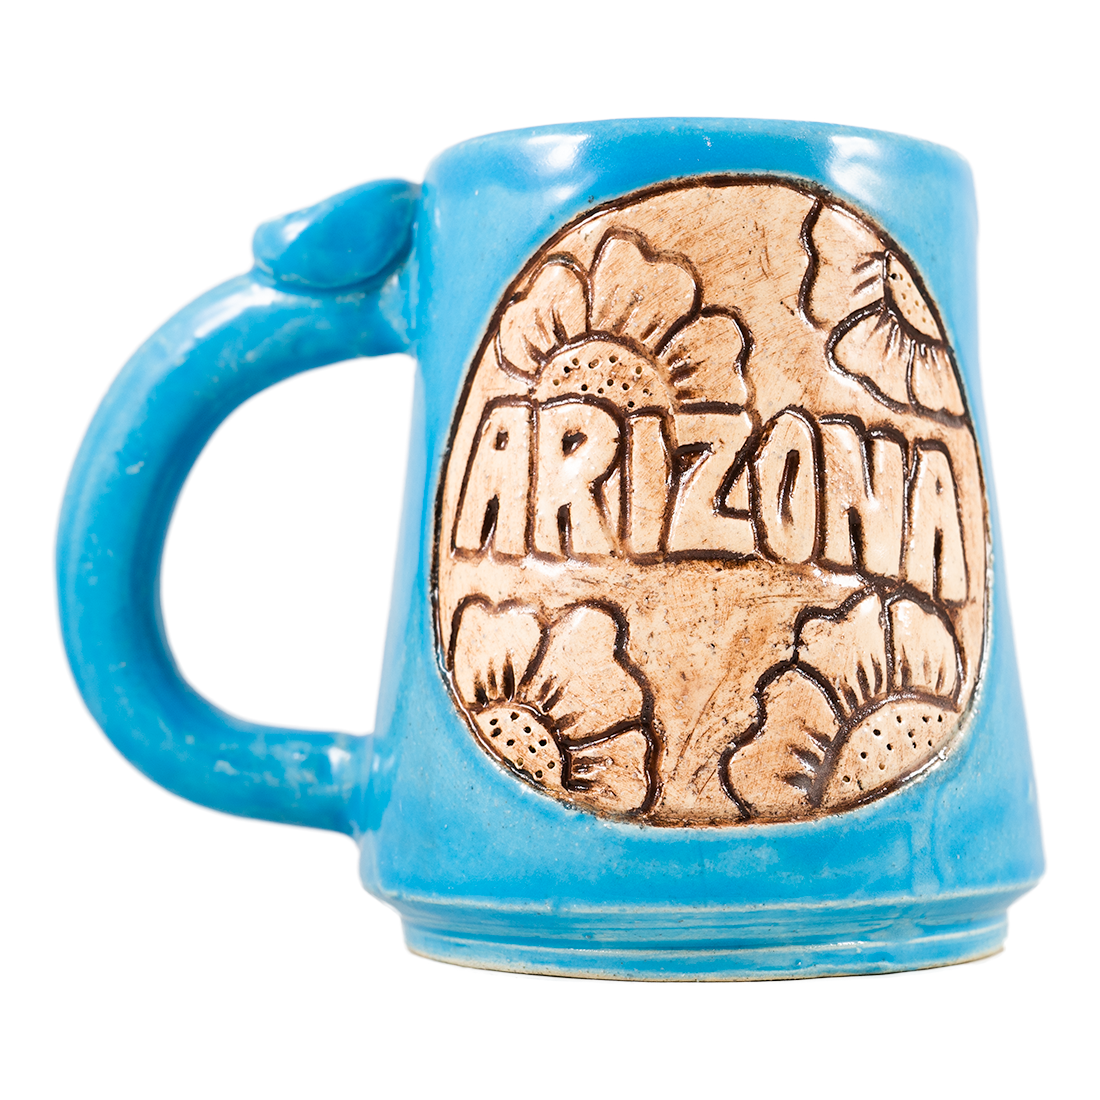 Arizona With Flowers Circle Handmade Ceramic Mug